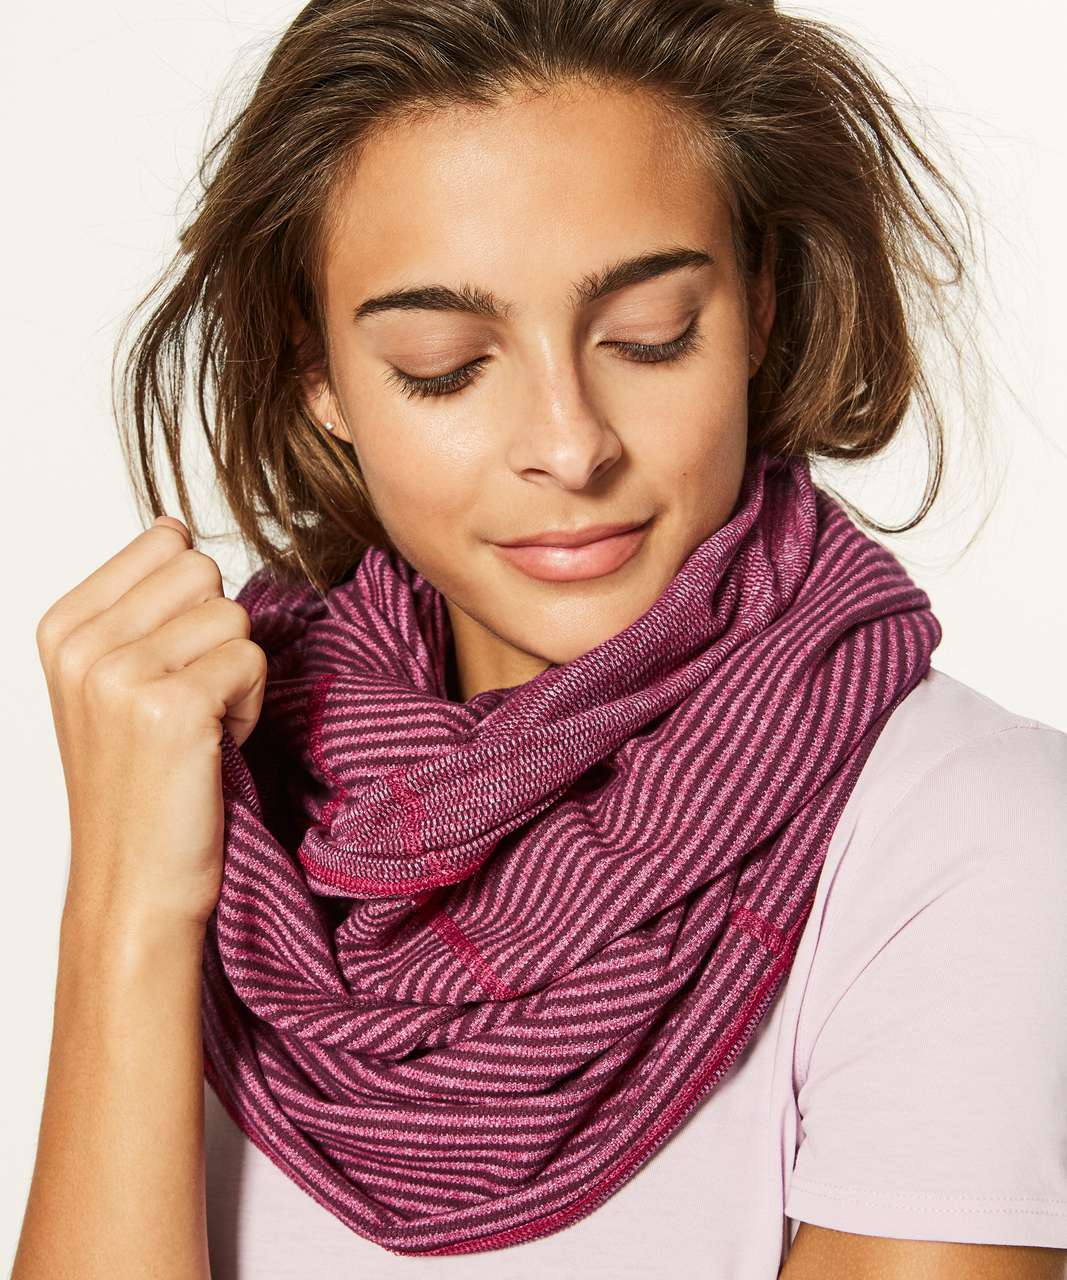 Lululemon Vinyasa Scarf *Rulu - Mini Check Pique Bordeaux Drama Heathered Berry Rumble